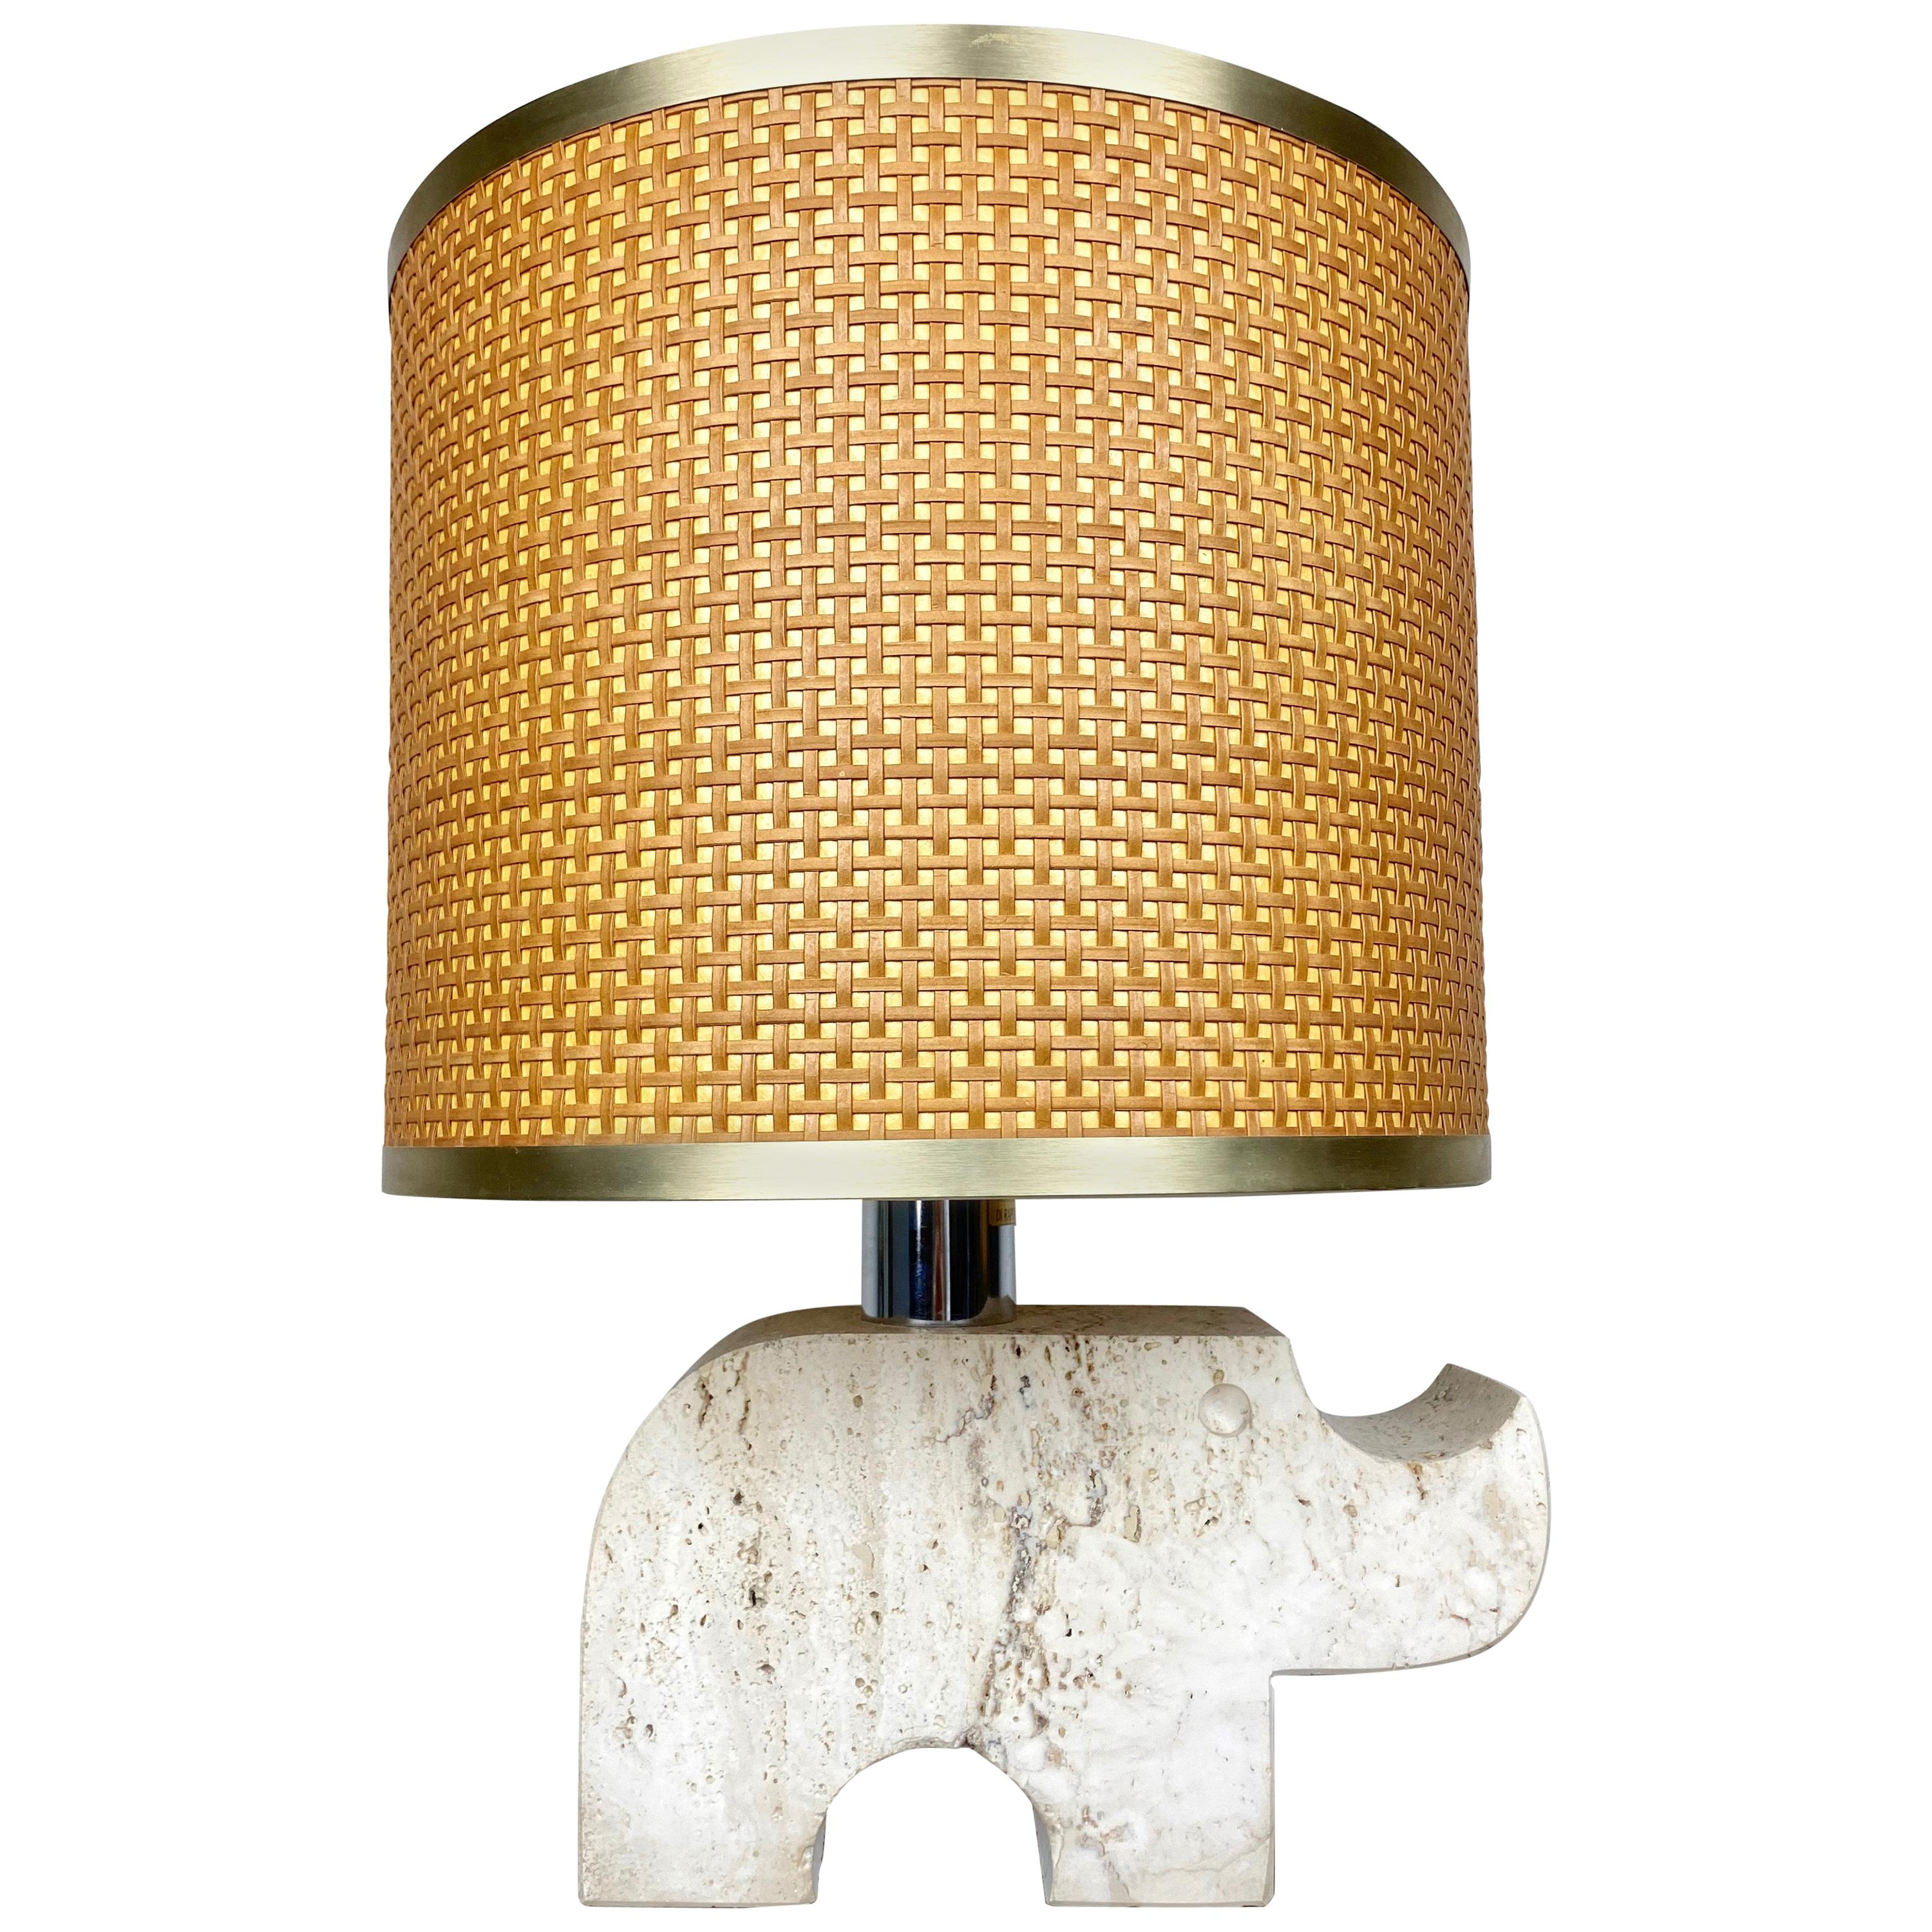 Rhinoceros Table Lamp in Travertine, Fratelli Mannelli, Italy, 1970s